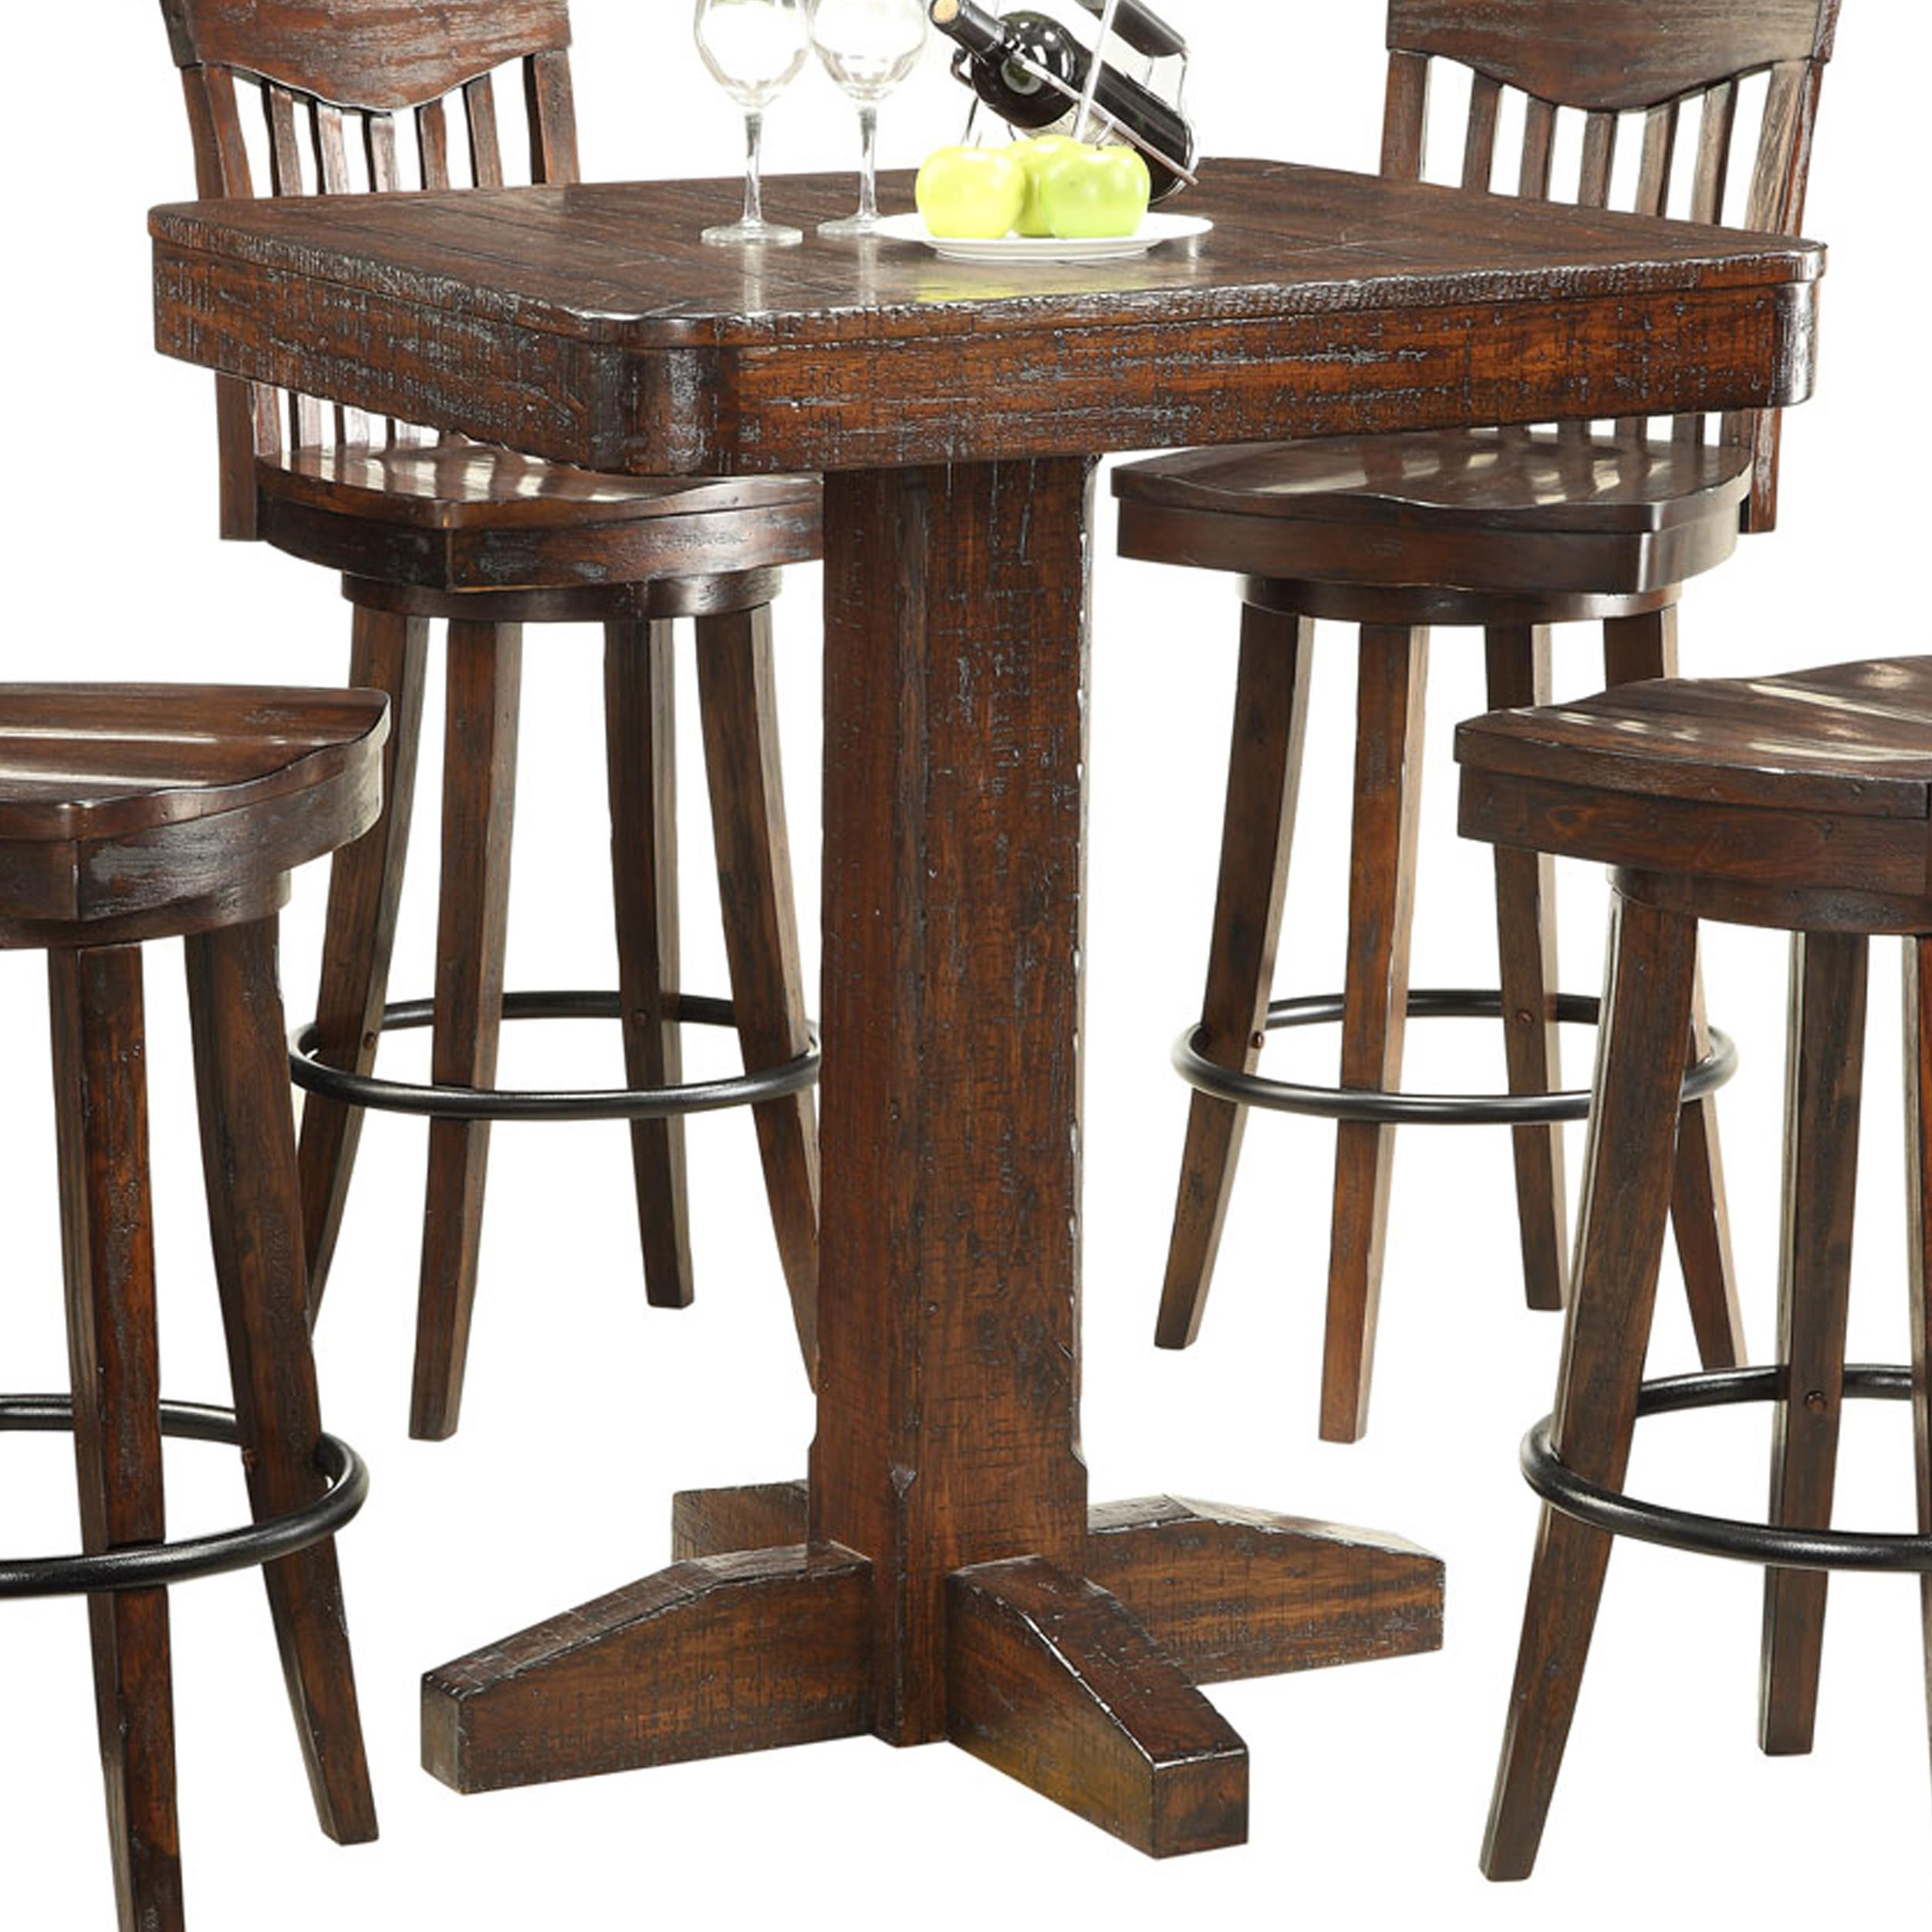 Dining pub table by e c i furniture wolf and gardiner for Furniture 2 u